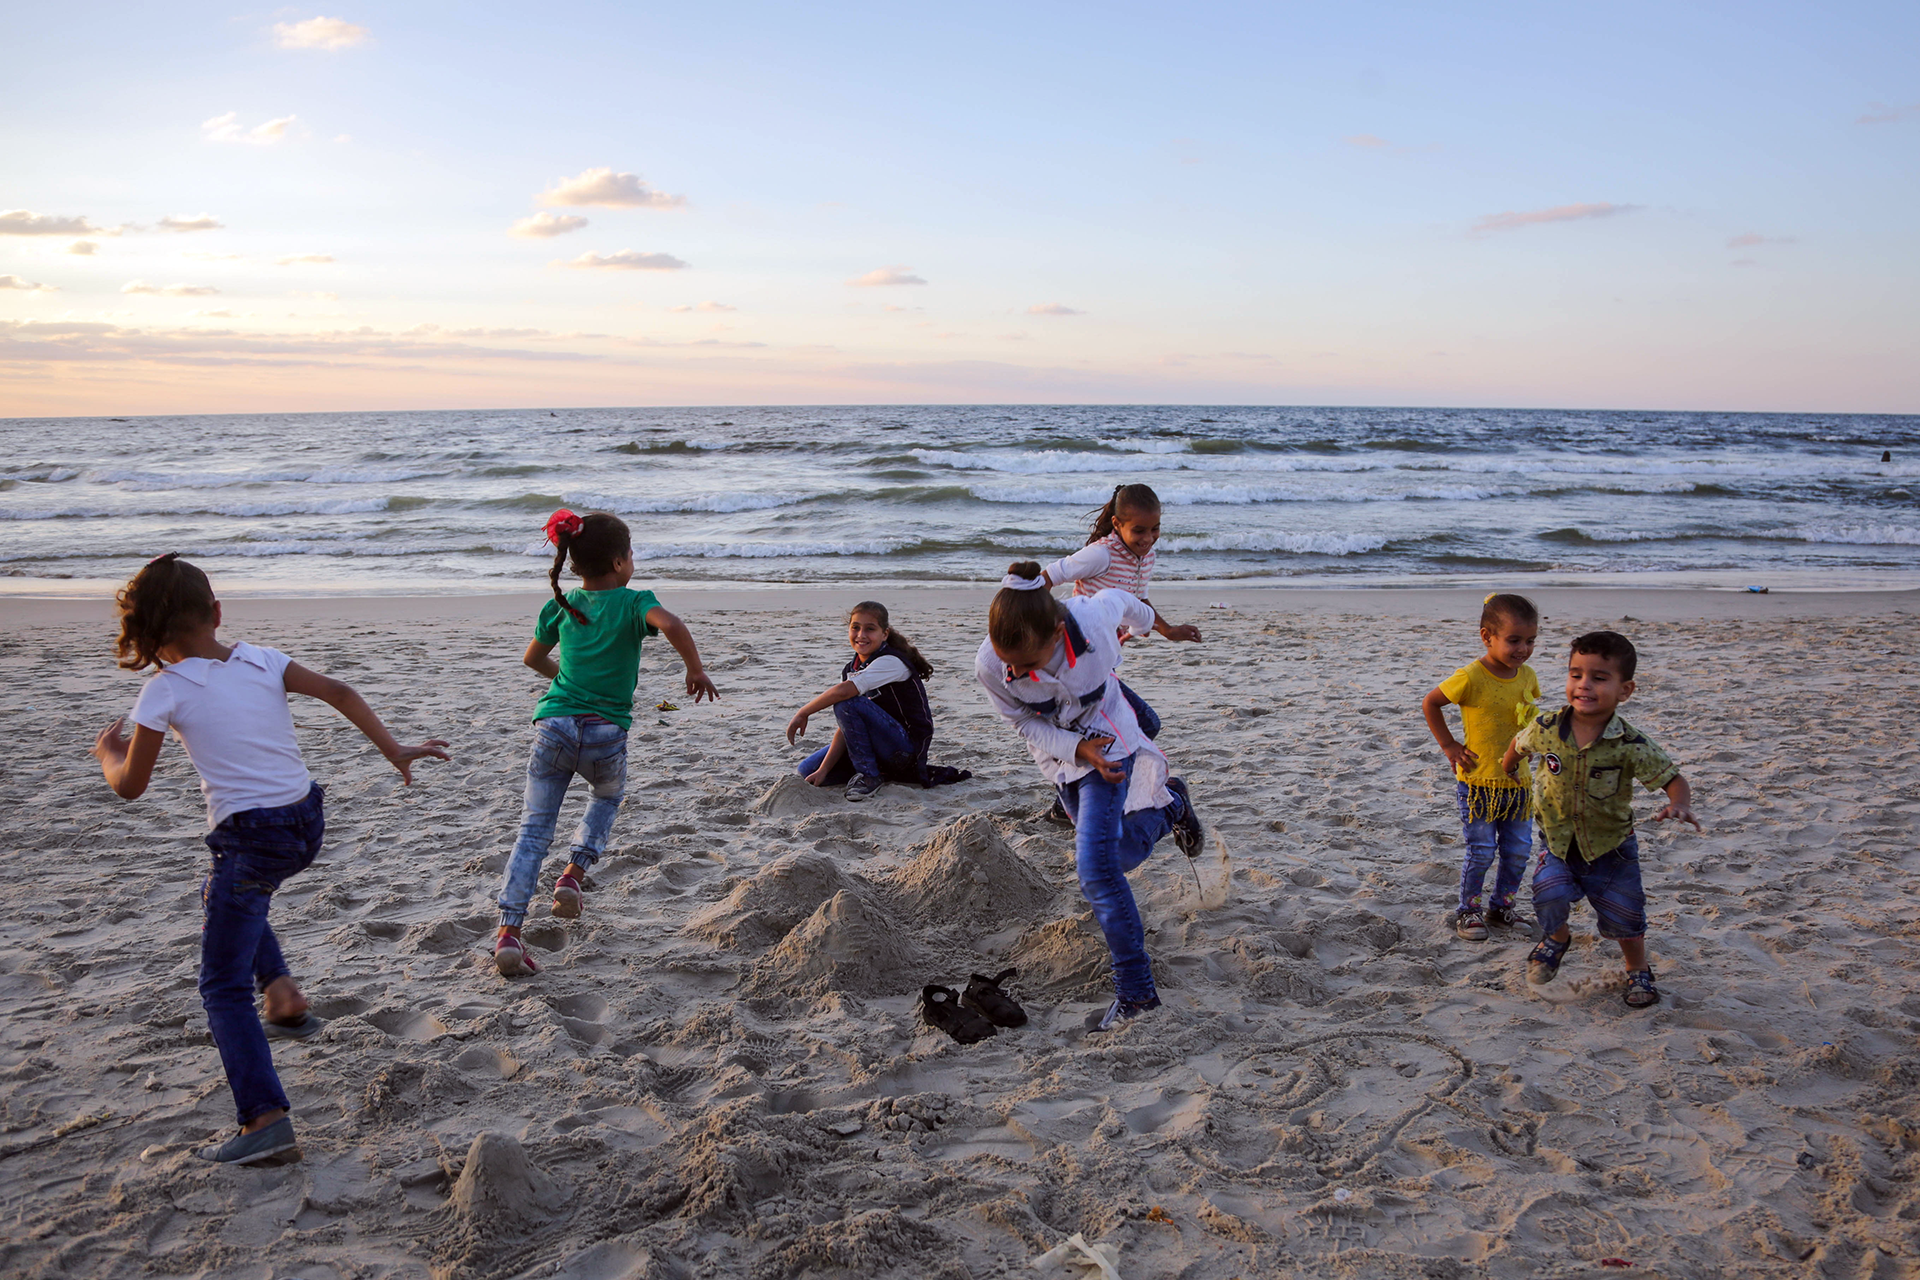 Relatives play on a beach nearby the site where six-year-old Mohammad was exposed to contaminated seawater and later died. (Photo: DCIP / Ezz Zanoun)